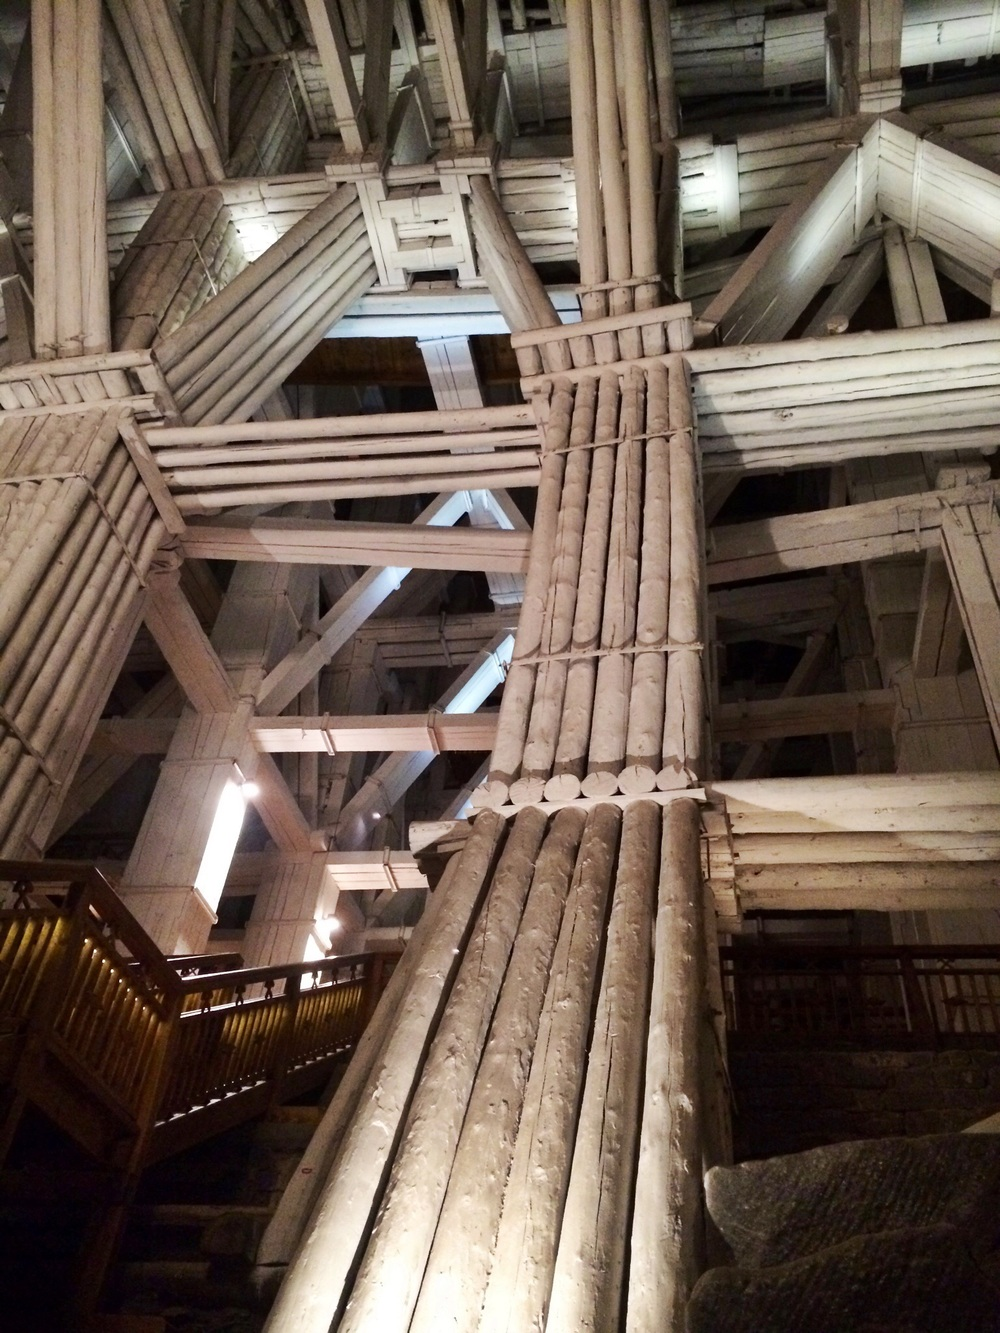 Wooden framework supporting the ceiling of the mine